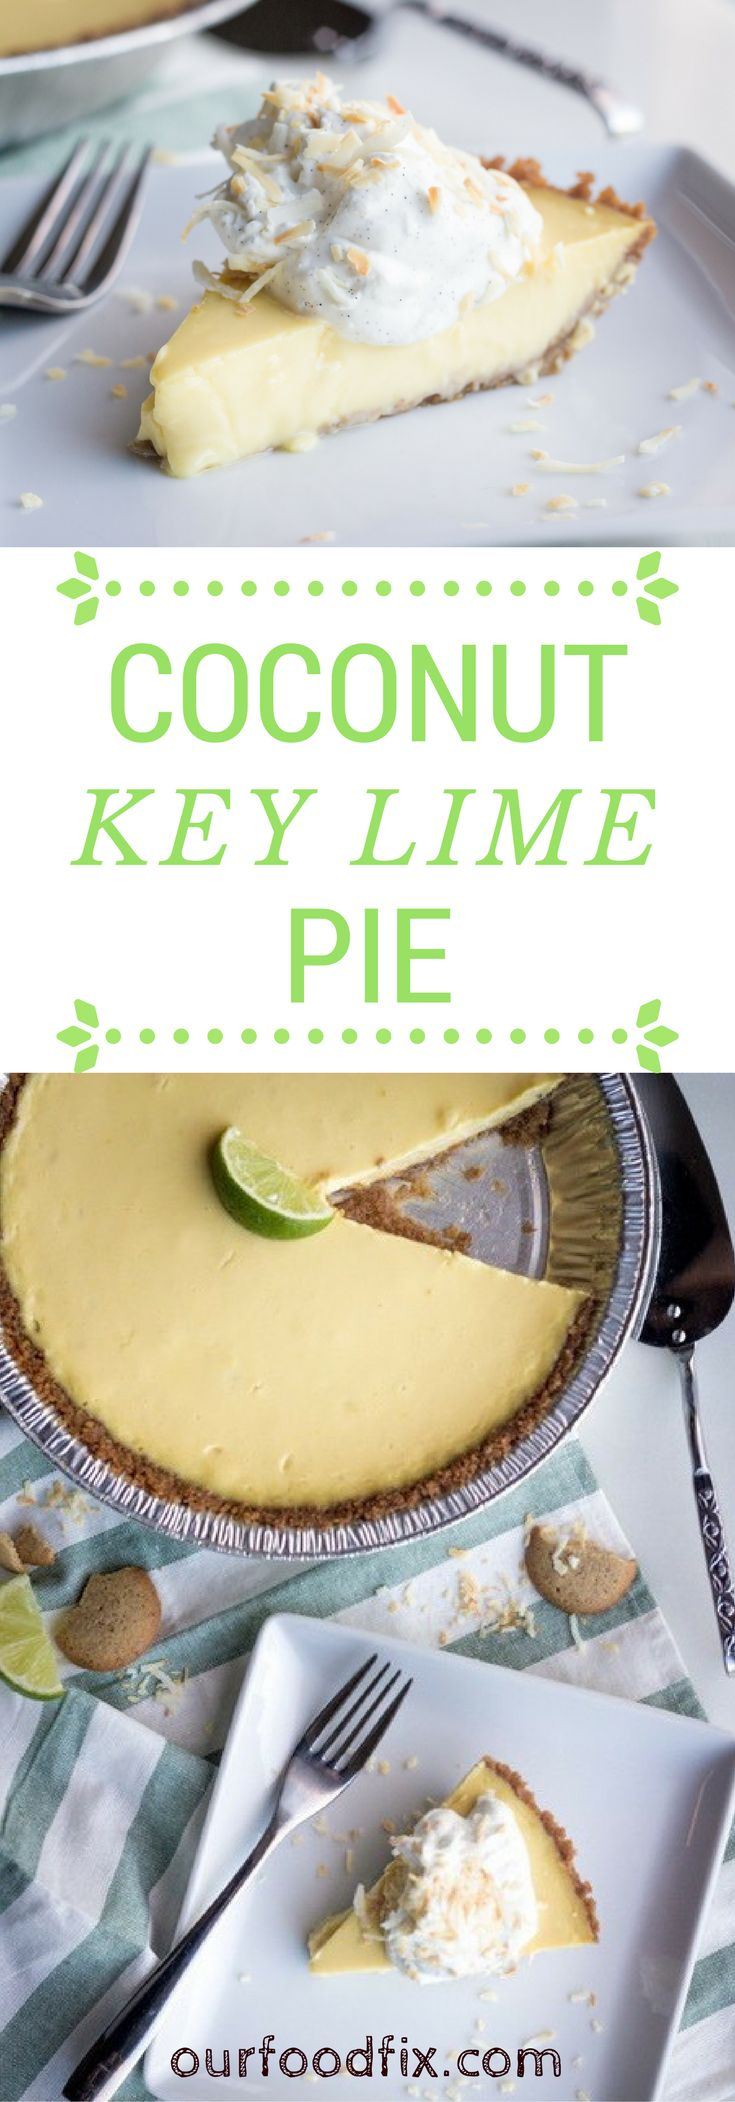 A creamy, rich yet light, wonderfully sweet-tart pie perfect for your Easter table or next holiday gathering. Hint, serve the pie partially frozen for a special warm weather treat! Dessert recipes | Key lime pie | Coconut key lime | Pie recipes | Easter recipes | Holiday recipes | Easter desserts | Make ahead dishes